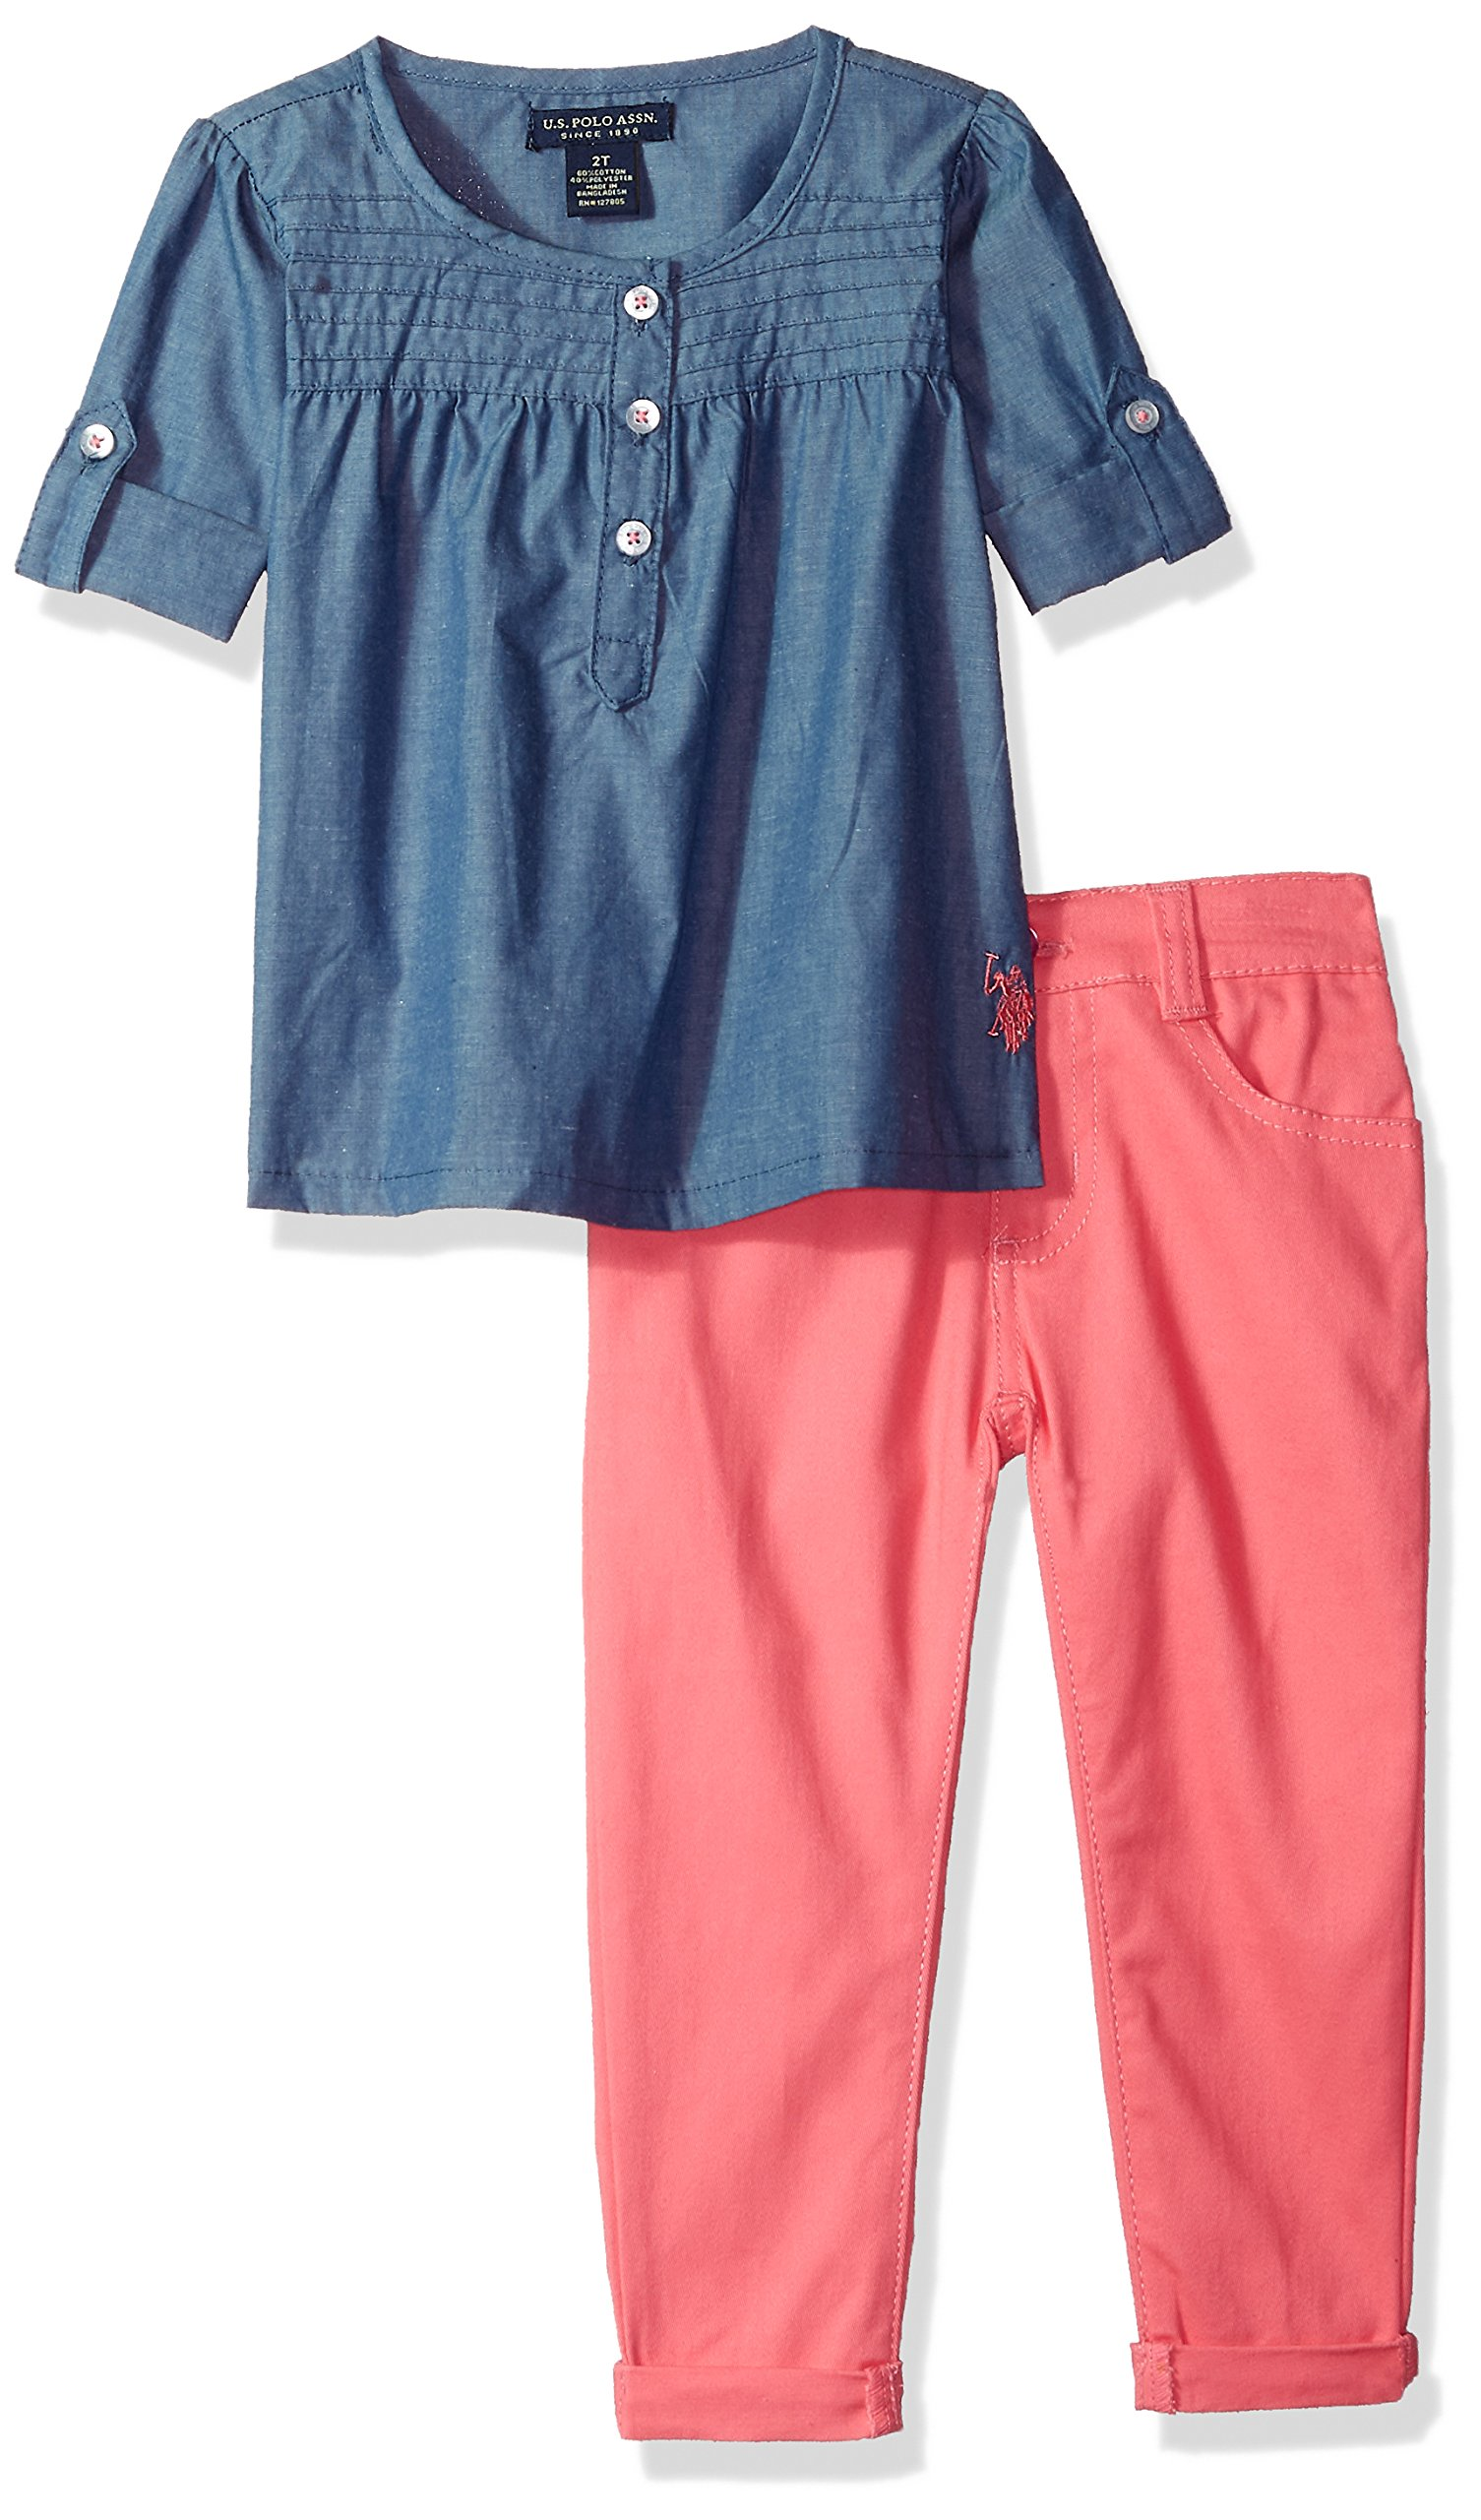 U.S. Polo Assn. Little Girls' Fashion Top and Pant Set, Babydoll Pin Tucked Pleats Twill Roll up Pant Camellia Rose, 6